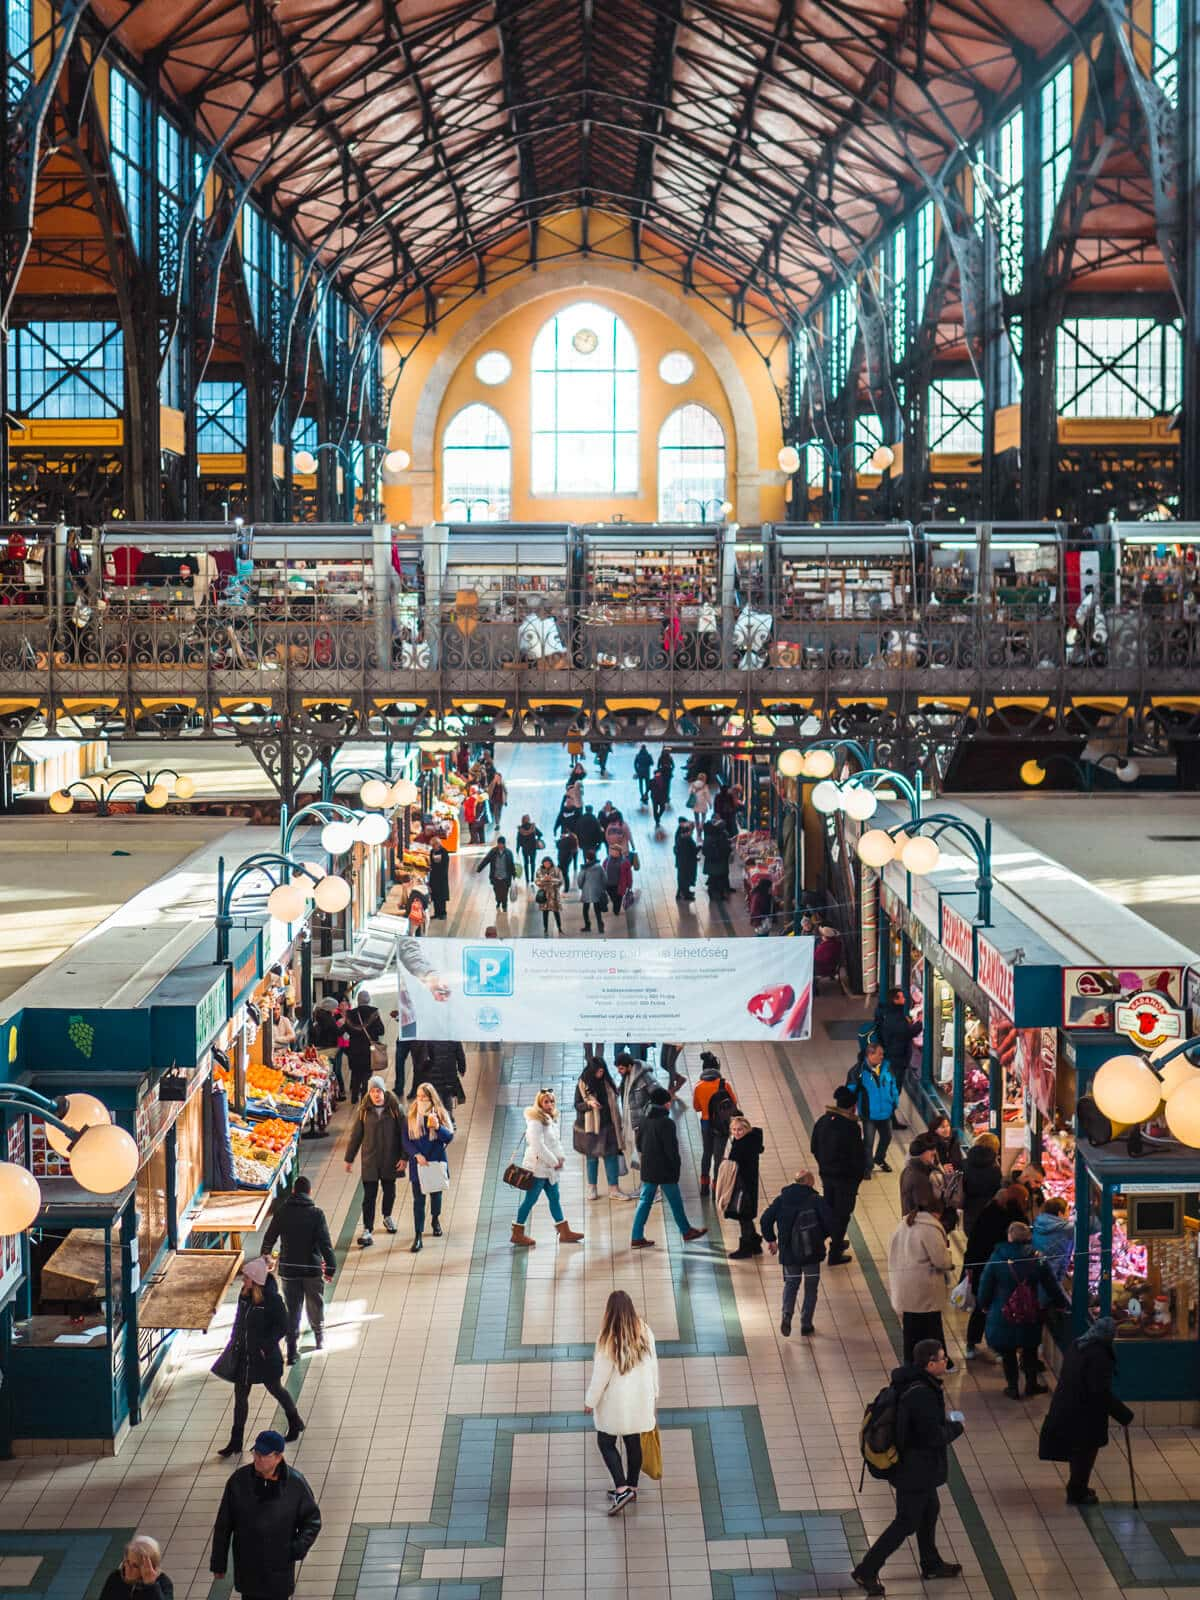 Budapest Instagrammable Places - The Great Budapest Market Hall